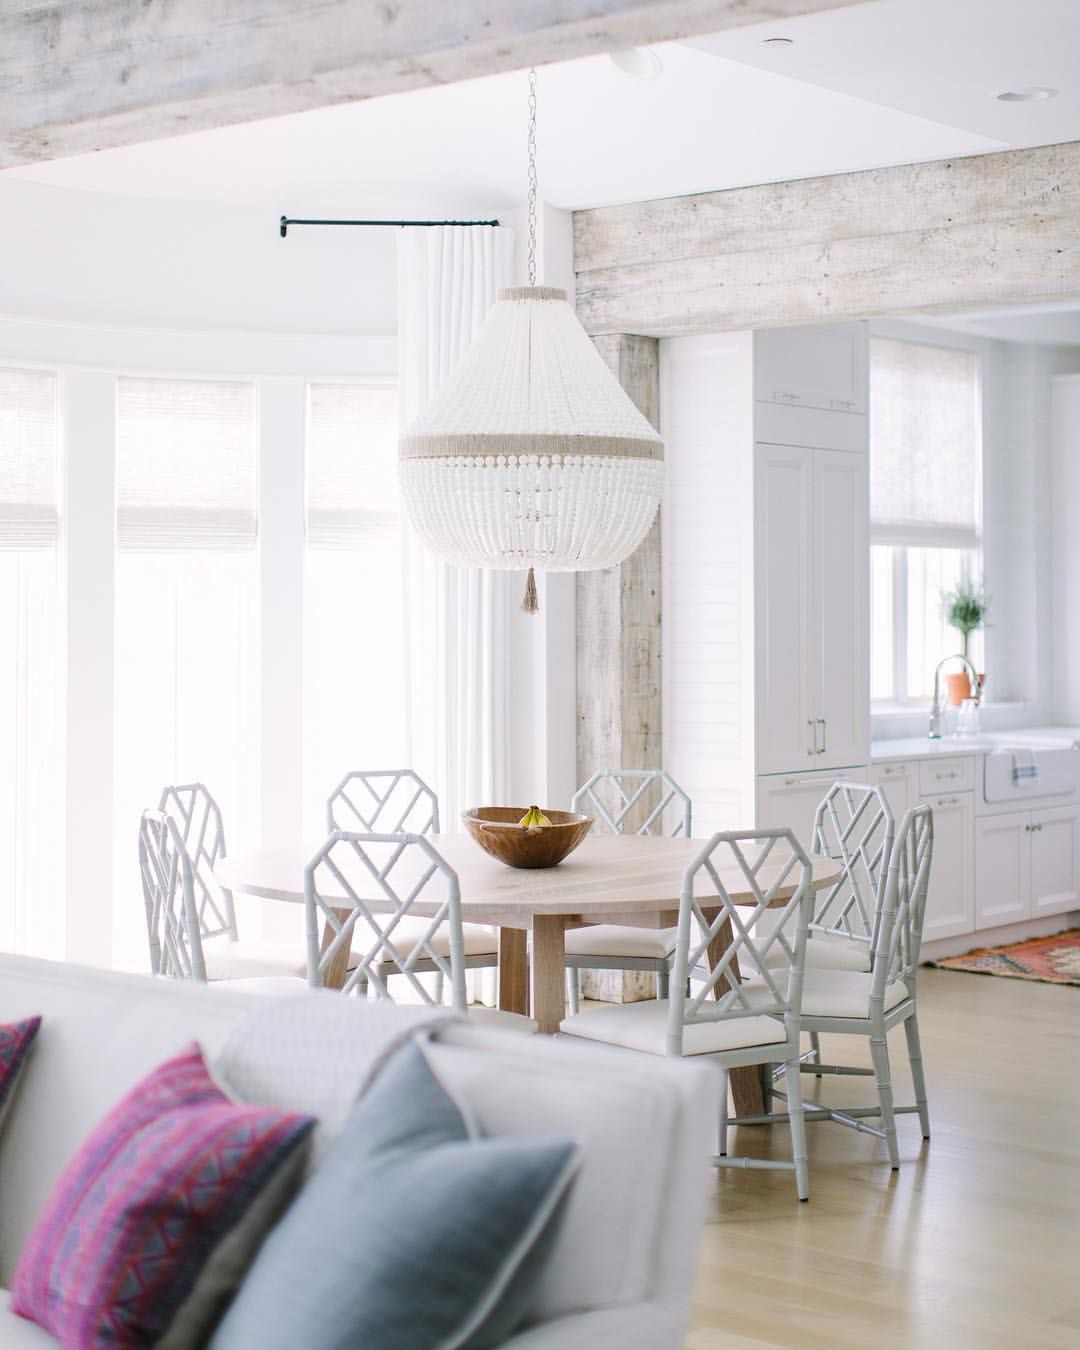 1 715 Likes 43 Comments Kate Marker Interiors Katemarkerinteriors On Instagram Who Doesn